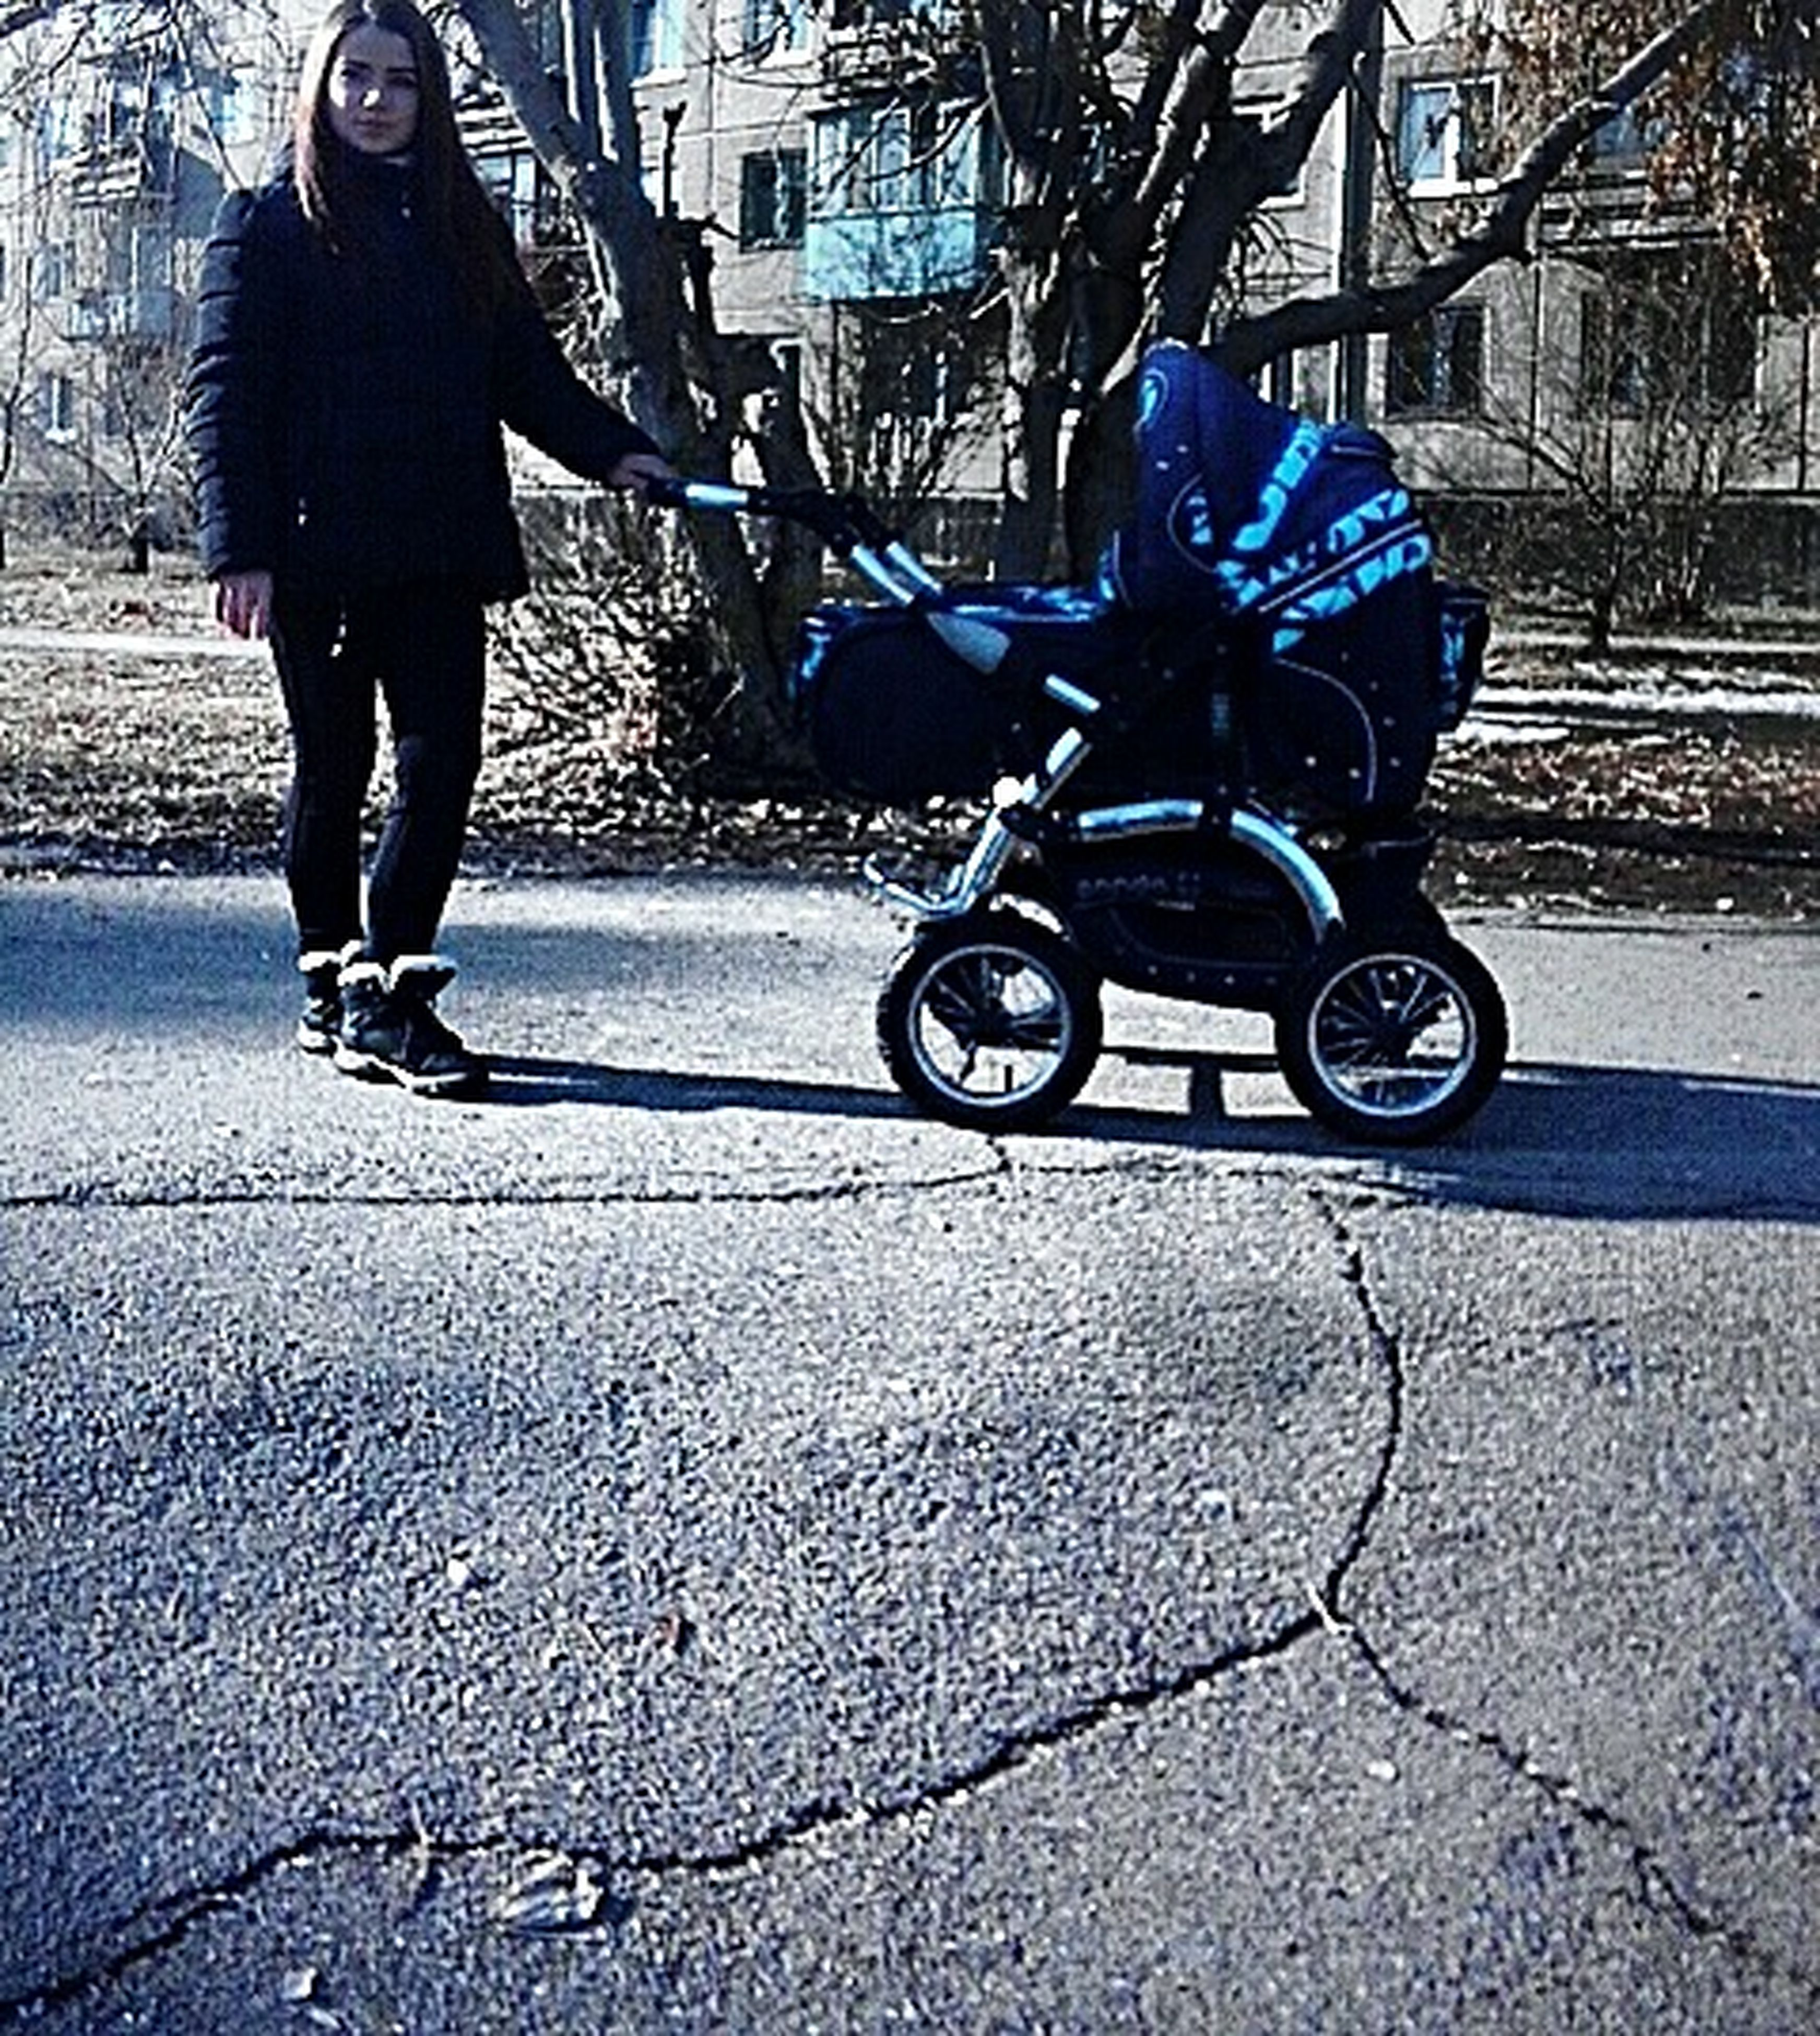 shadow, lifestyles, full length, one person, adults only, outdoors, day, adult, baby stroller, real people, people, women, only women, low section